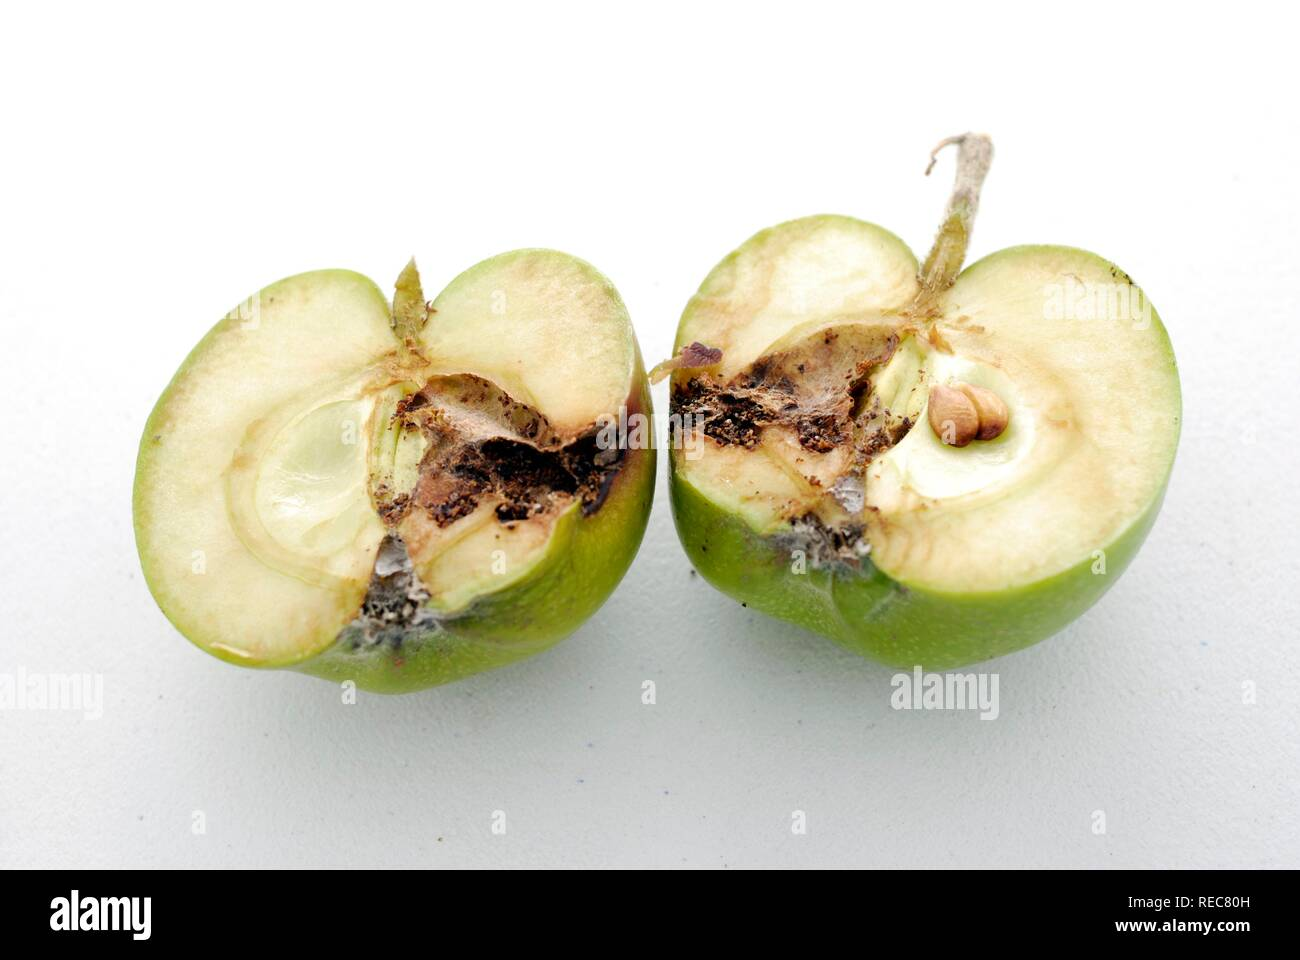 Codling moth damage shown in cross section of an affected apple - Stock Image